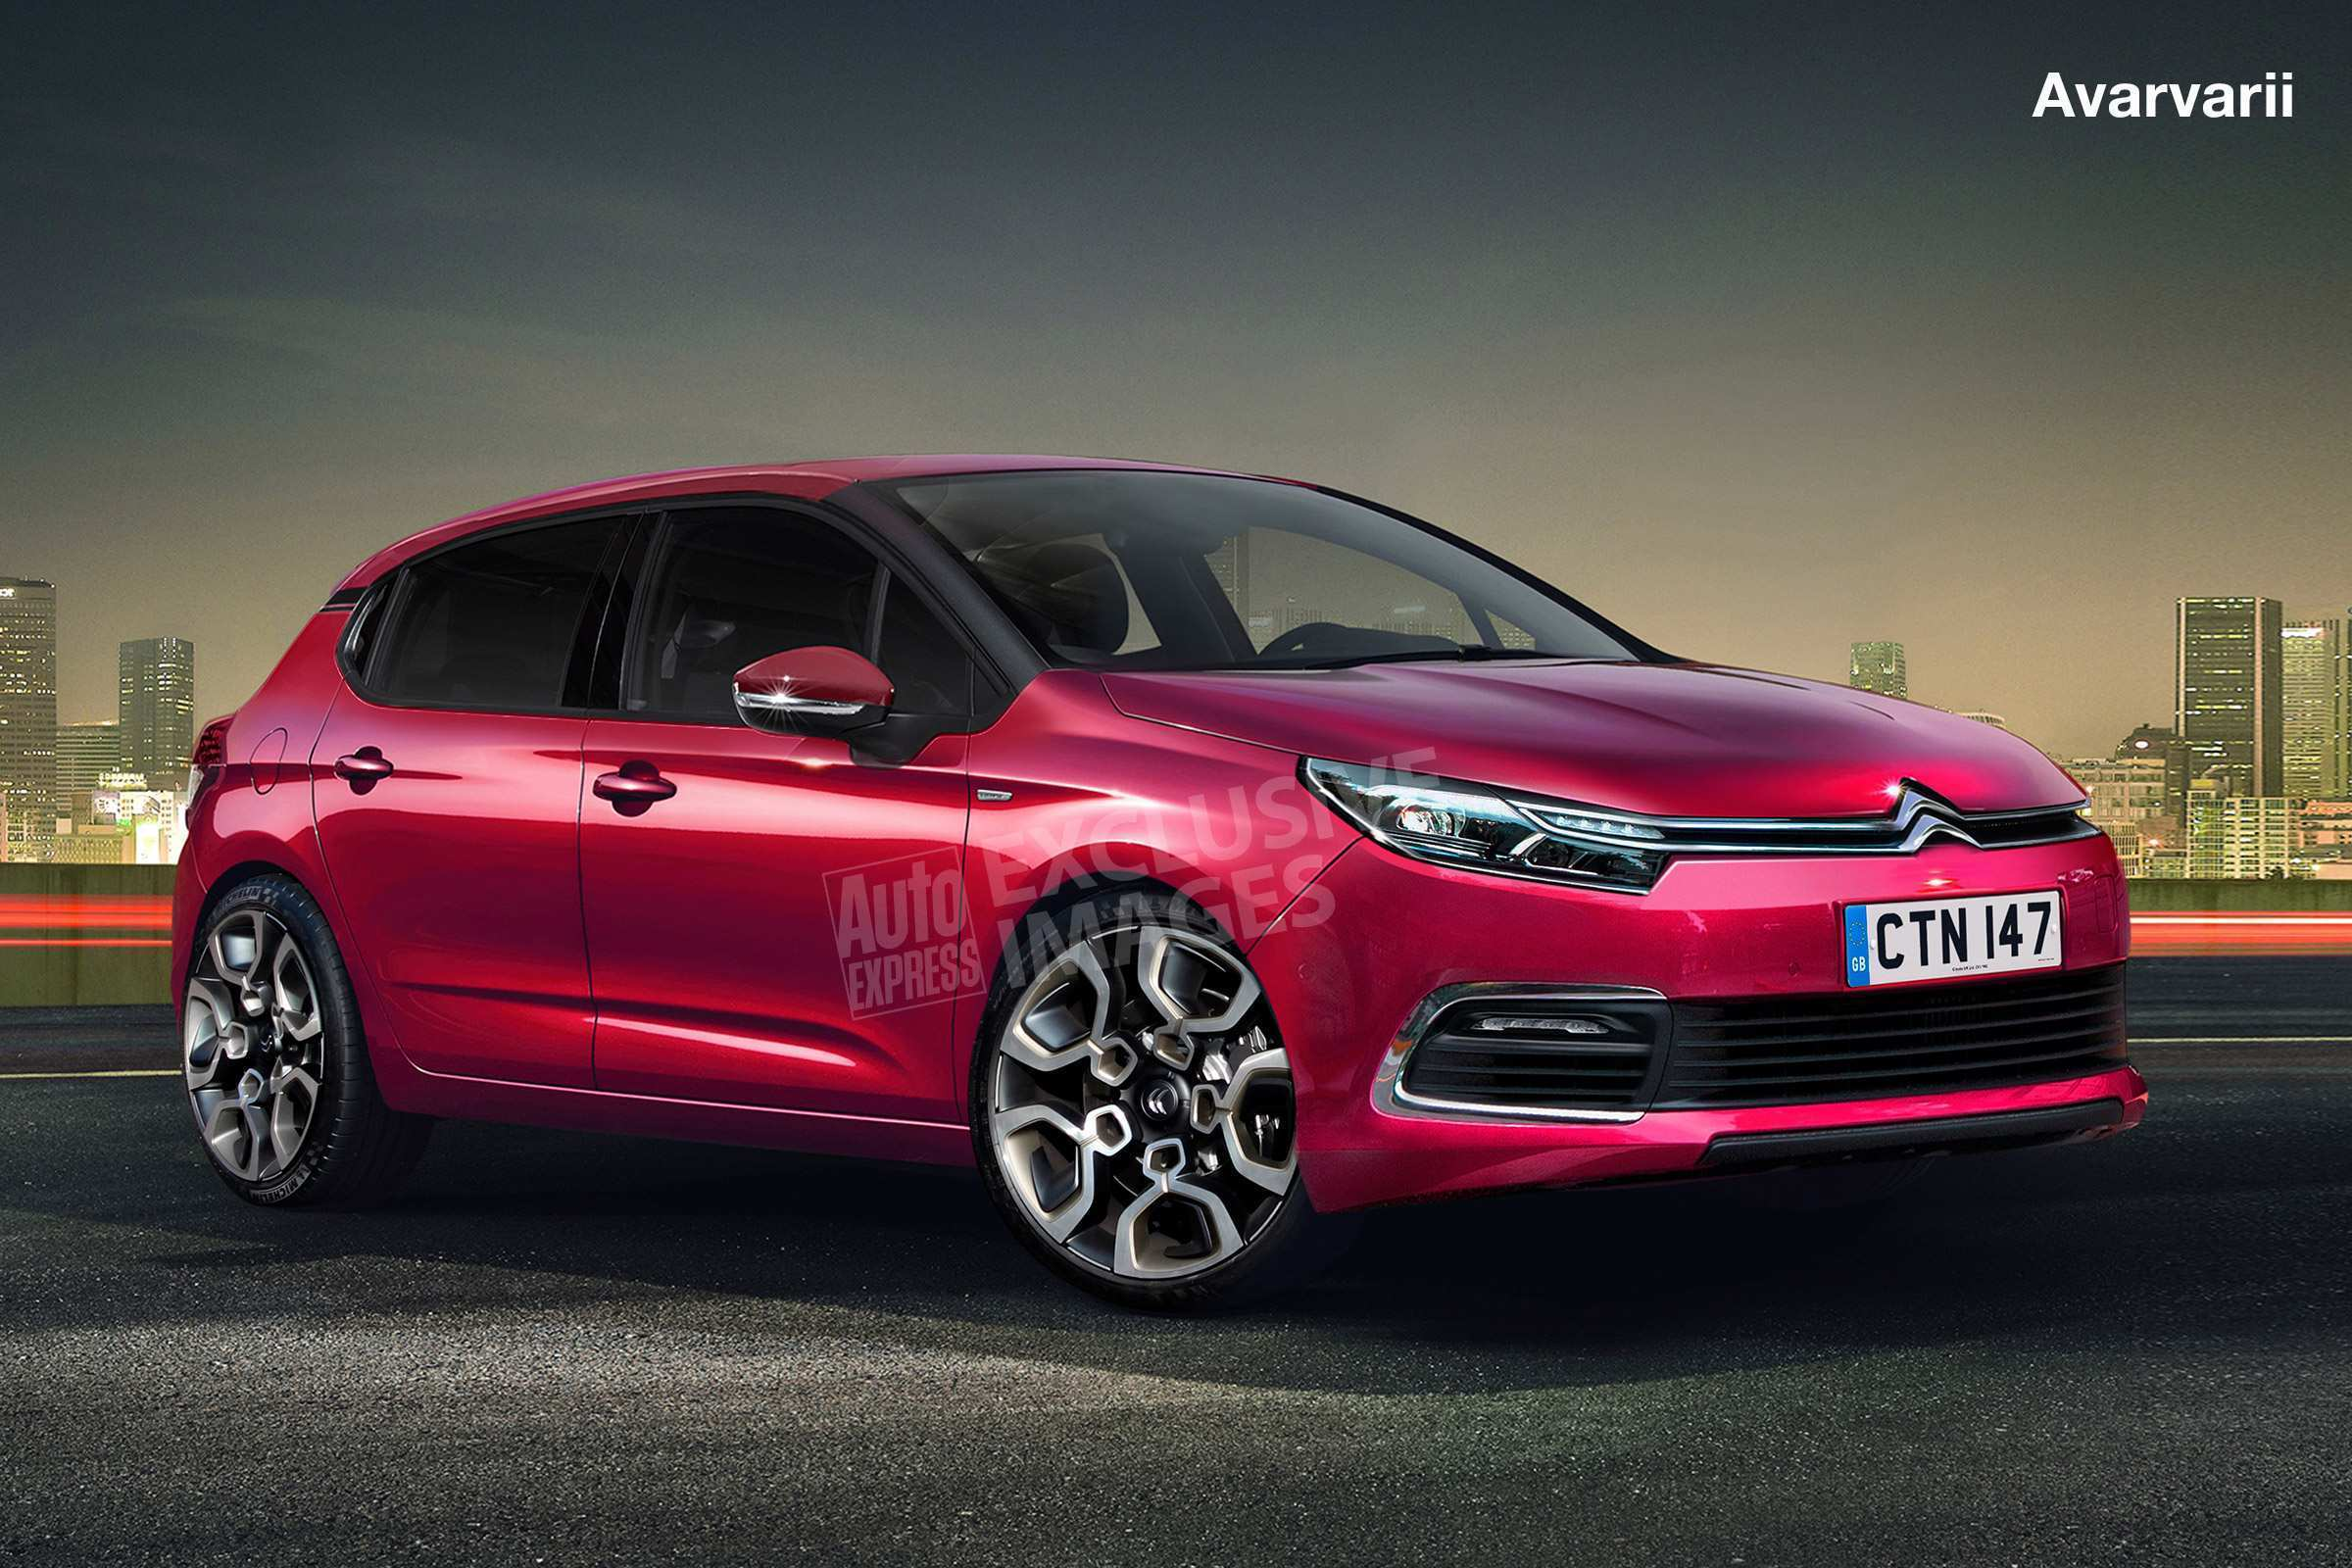 69 All New 2019 Citroen C4 Performance